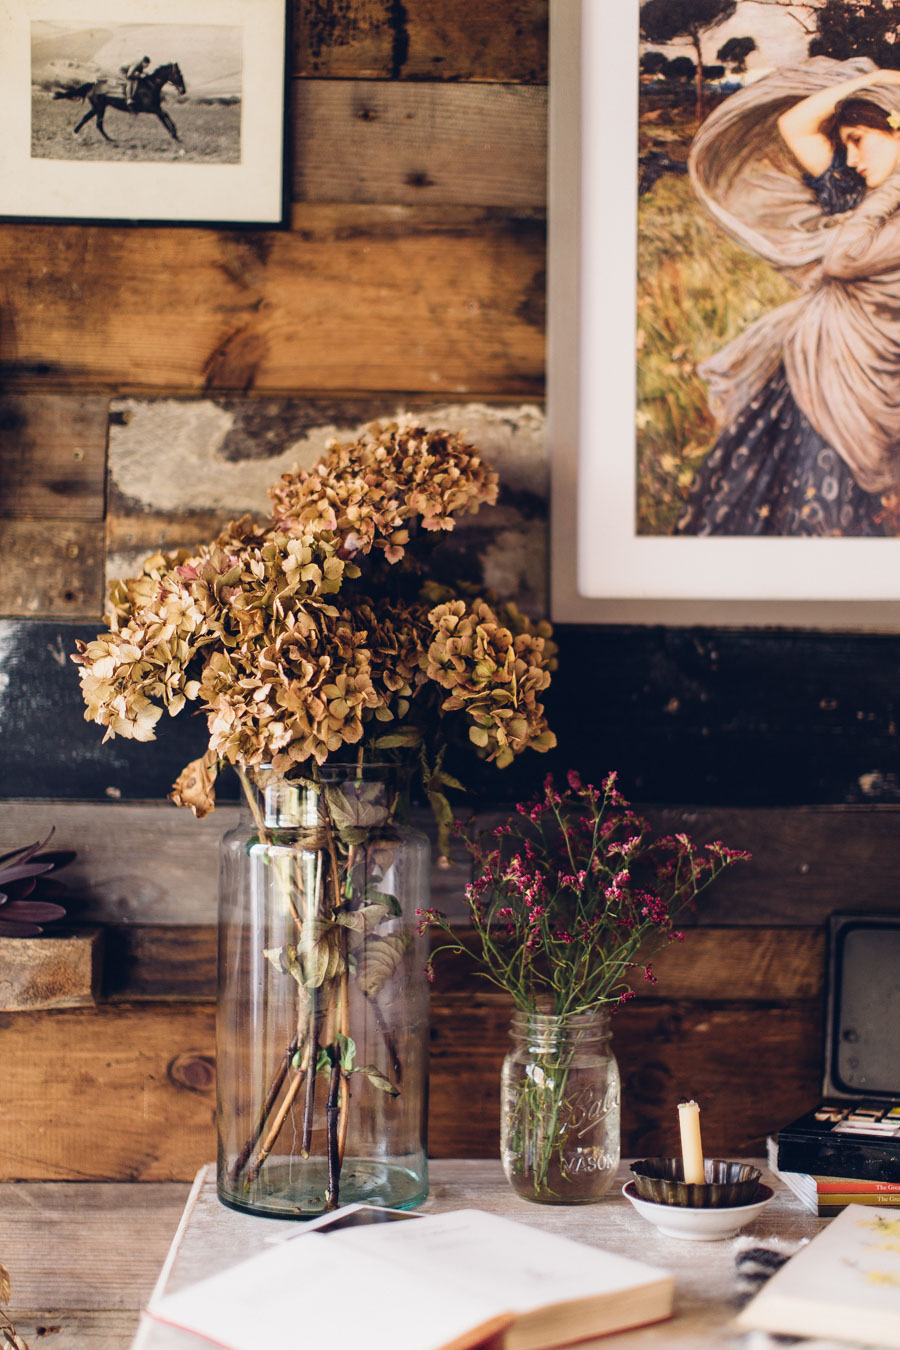 Rustic shed decor to inspire creativity